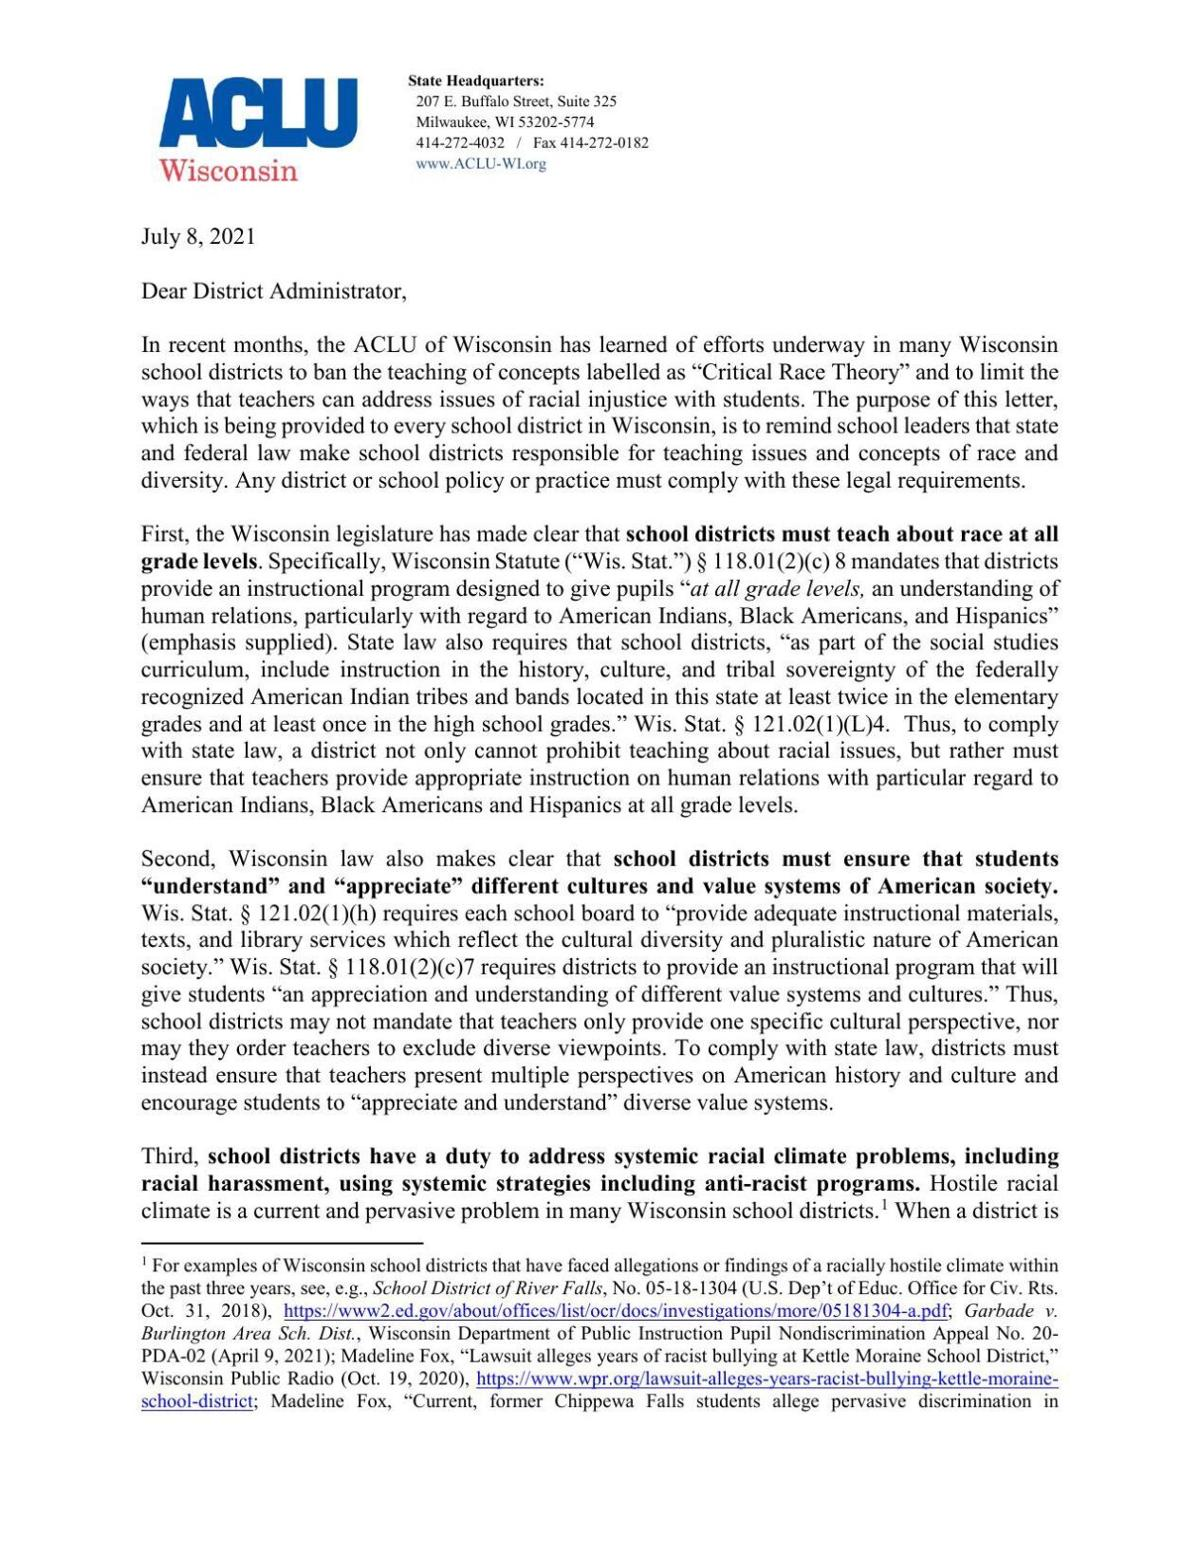 ACLU CRT letter